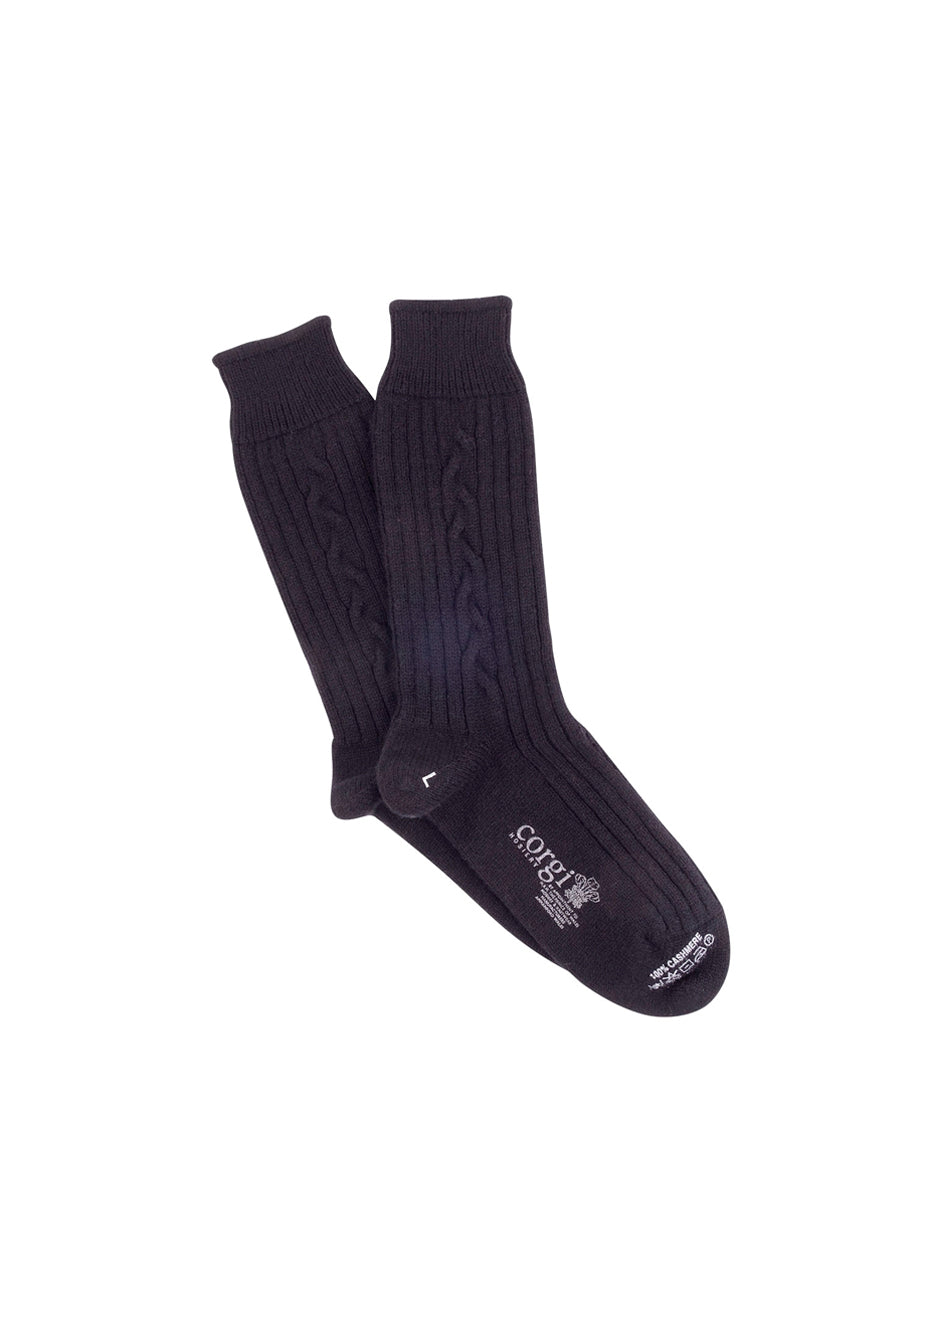 Women's Black Cable Cashmere Socks